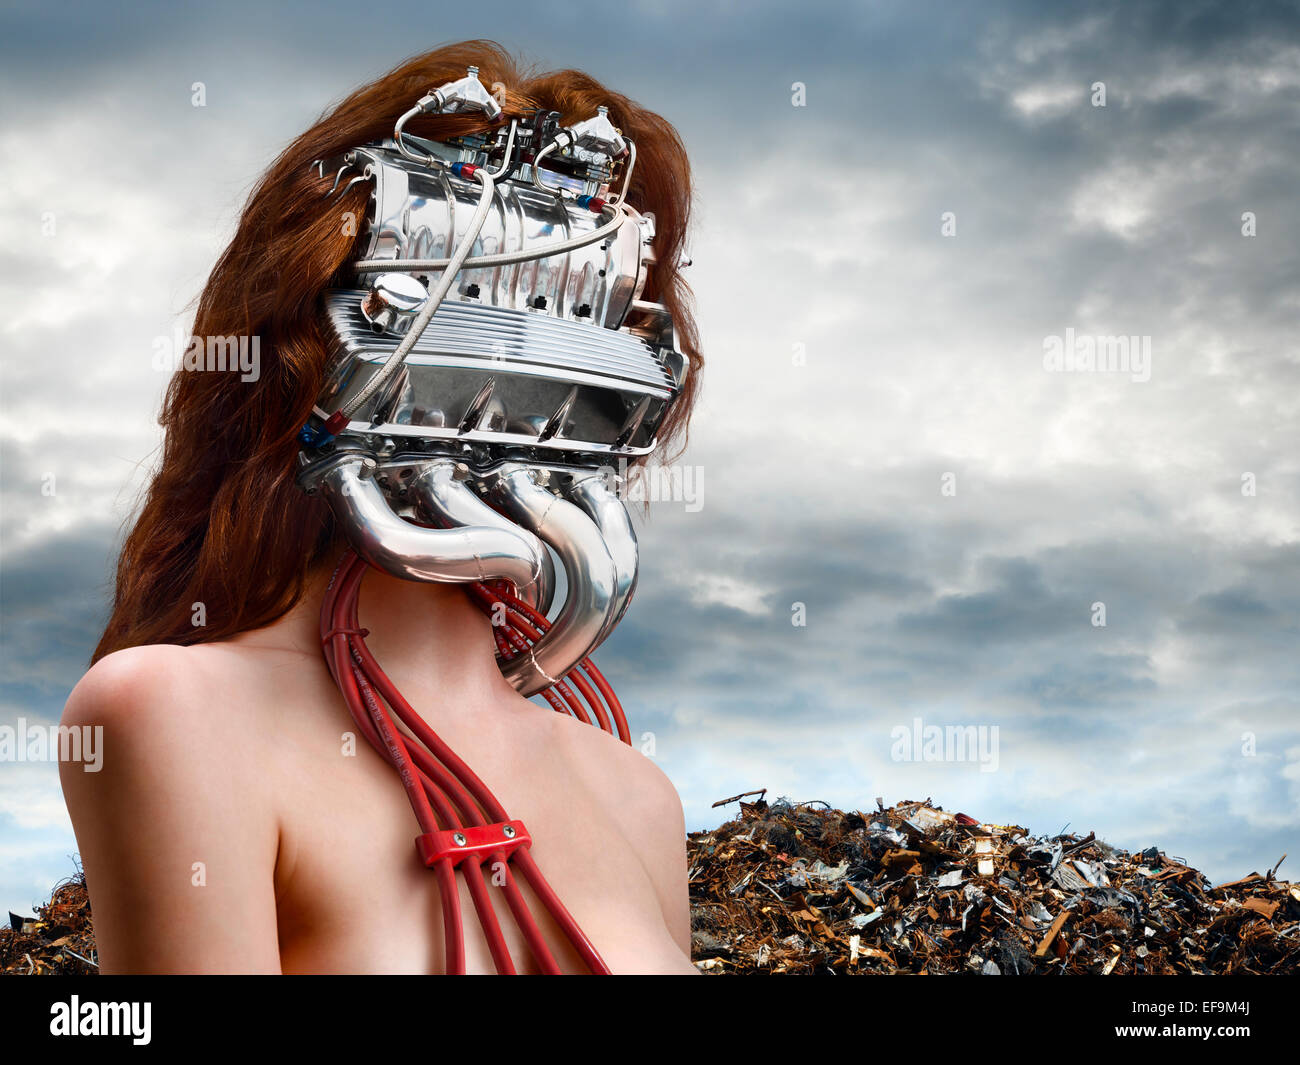 Horizontal fantasy image of woman with a car engine for a head with a junkyard behind her - Stock Image